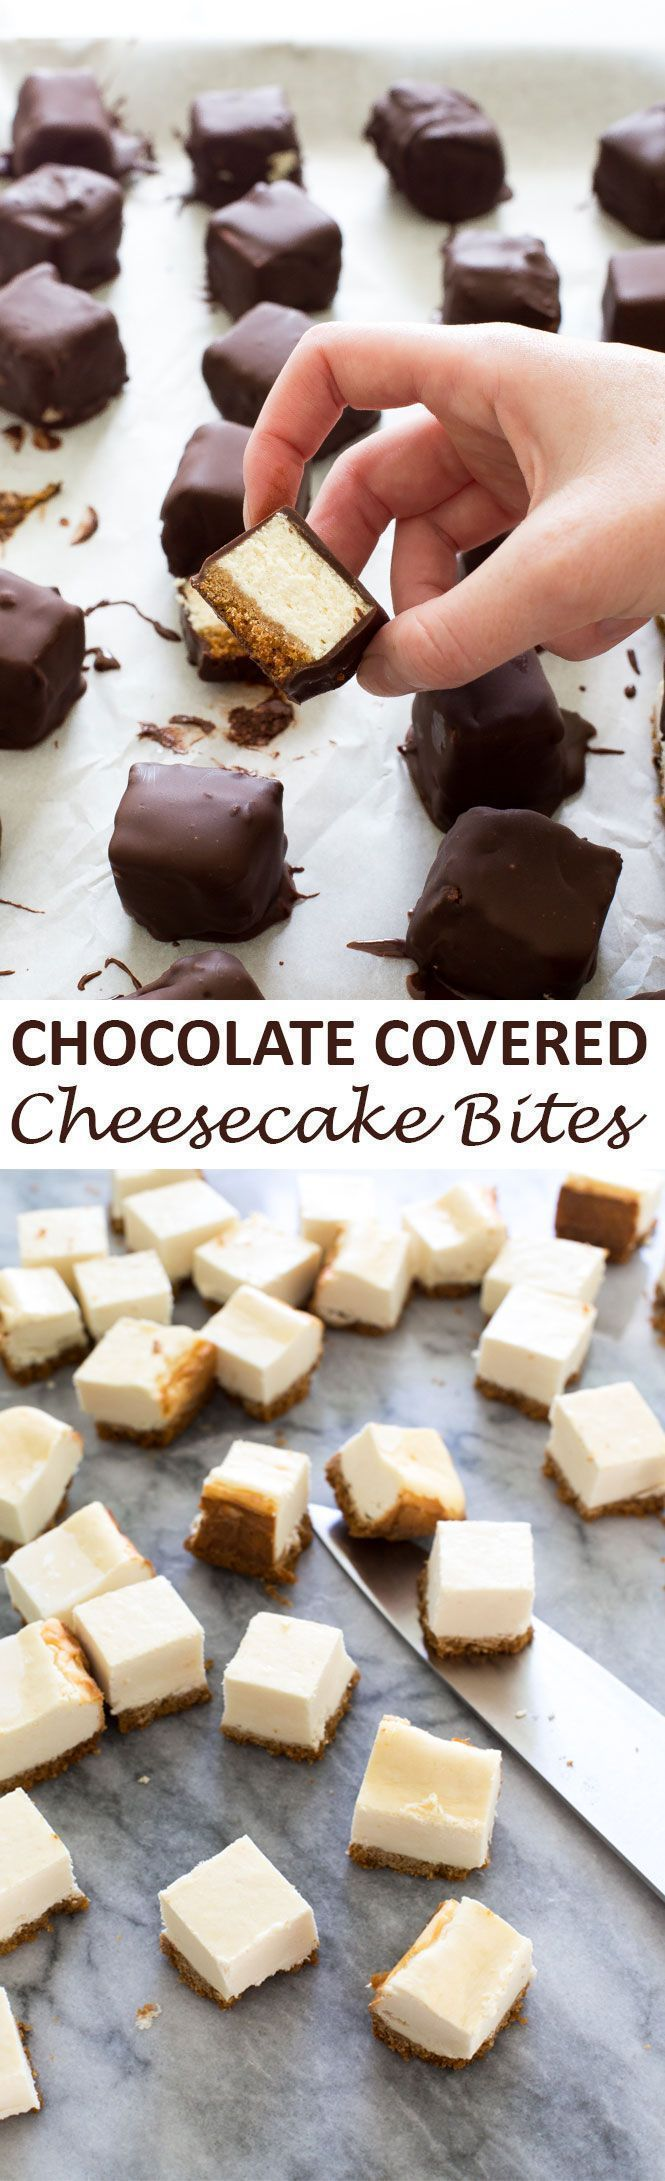 Chocolate Covered Cheesecake Bites. Perfect bite-sized cheesecake covered in a…